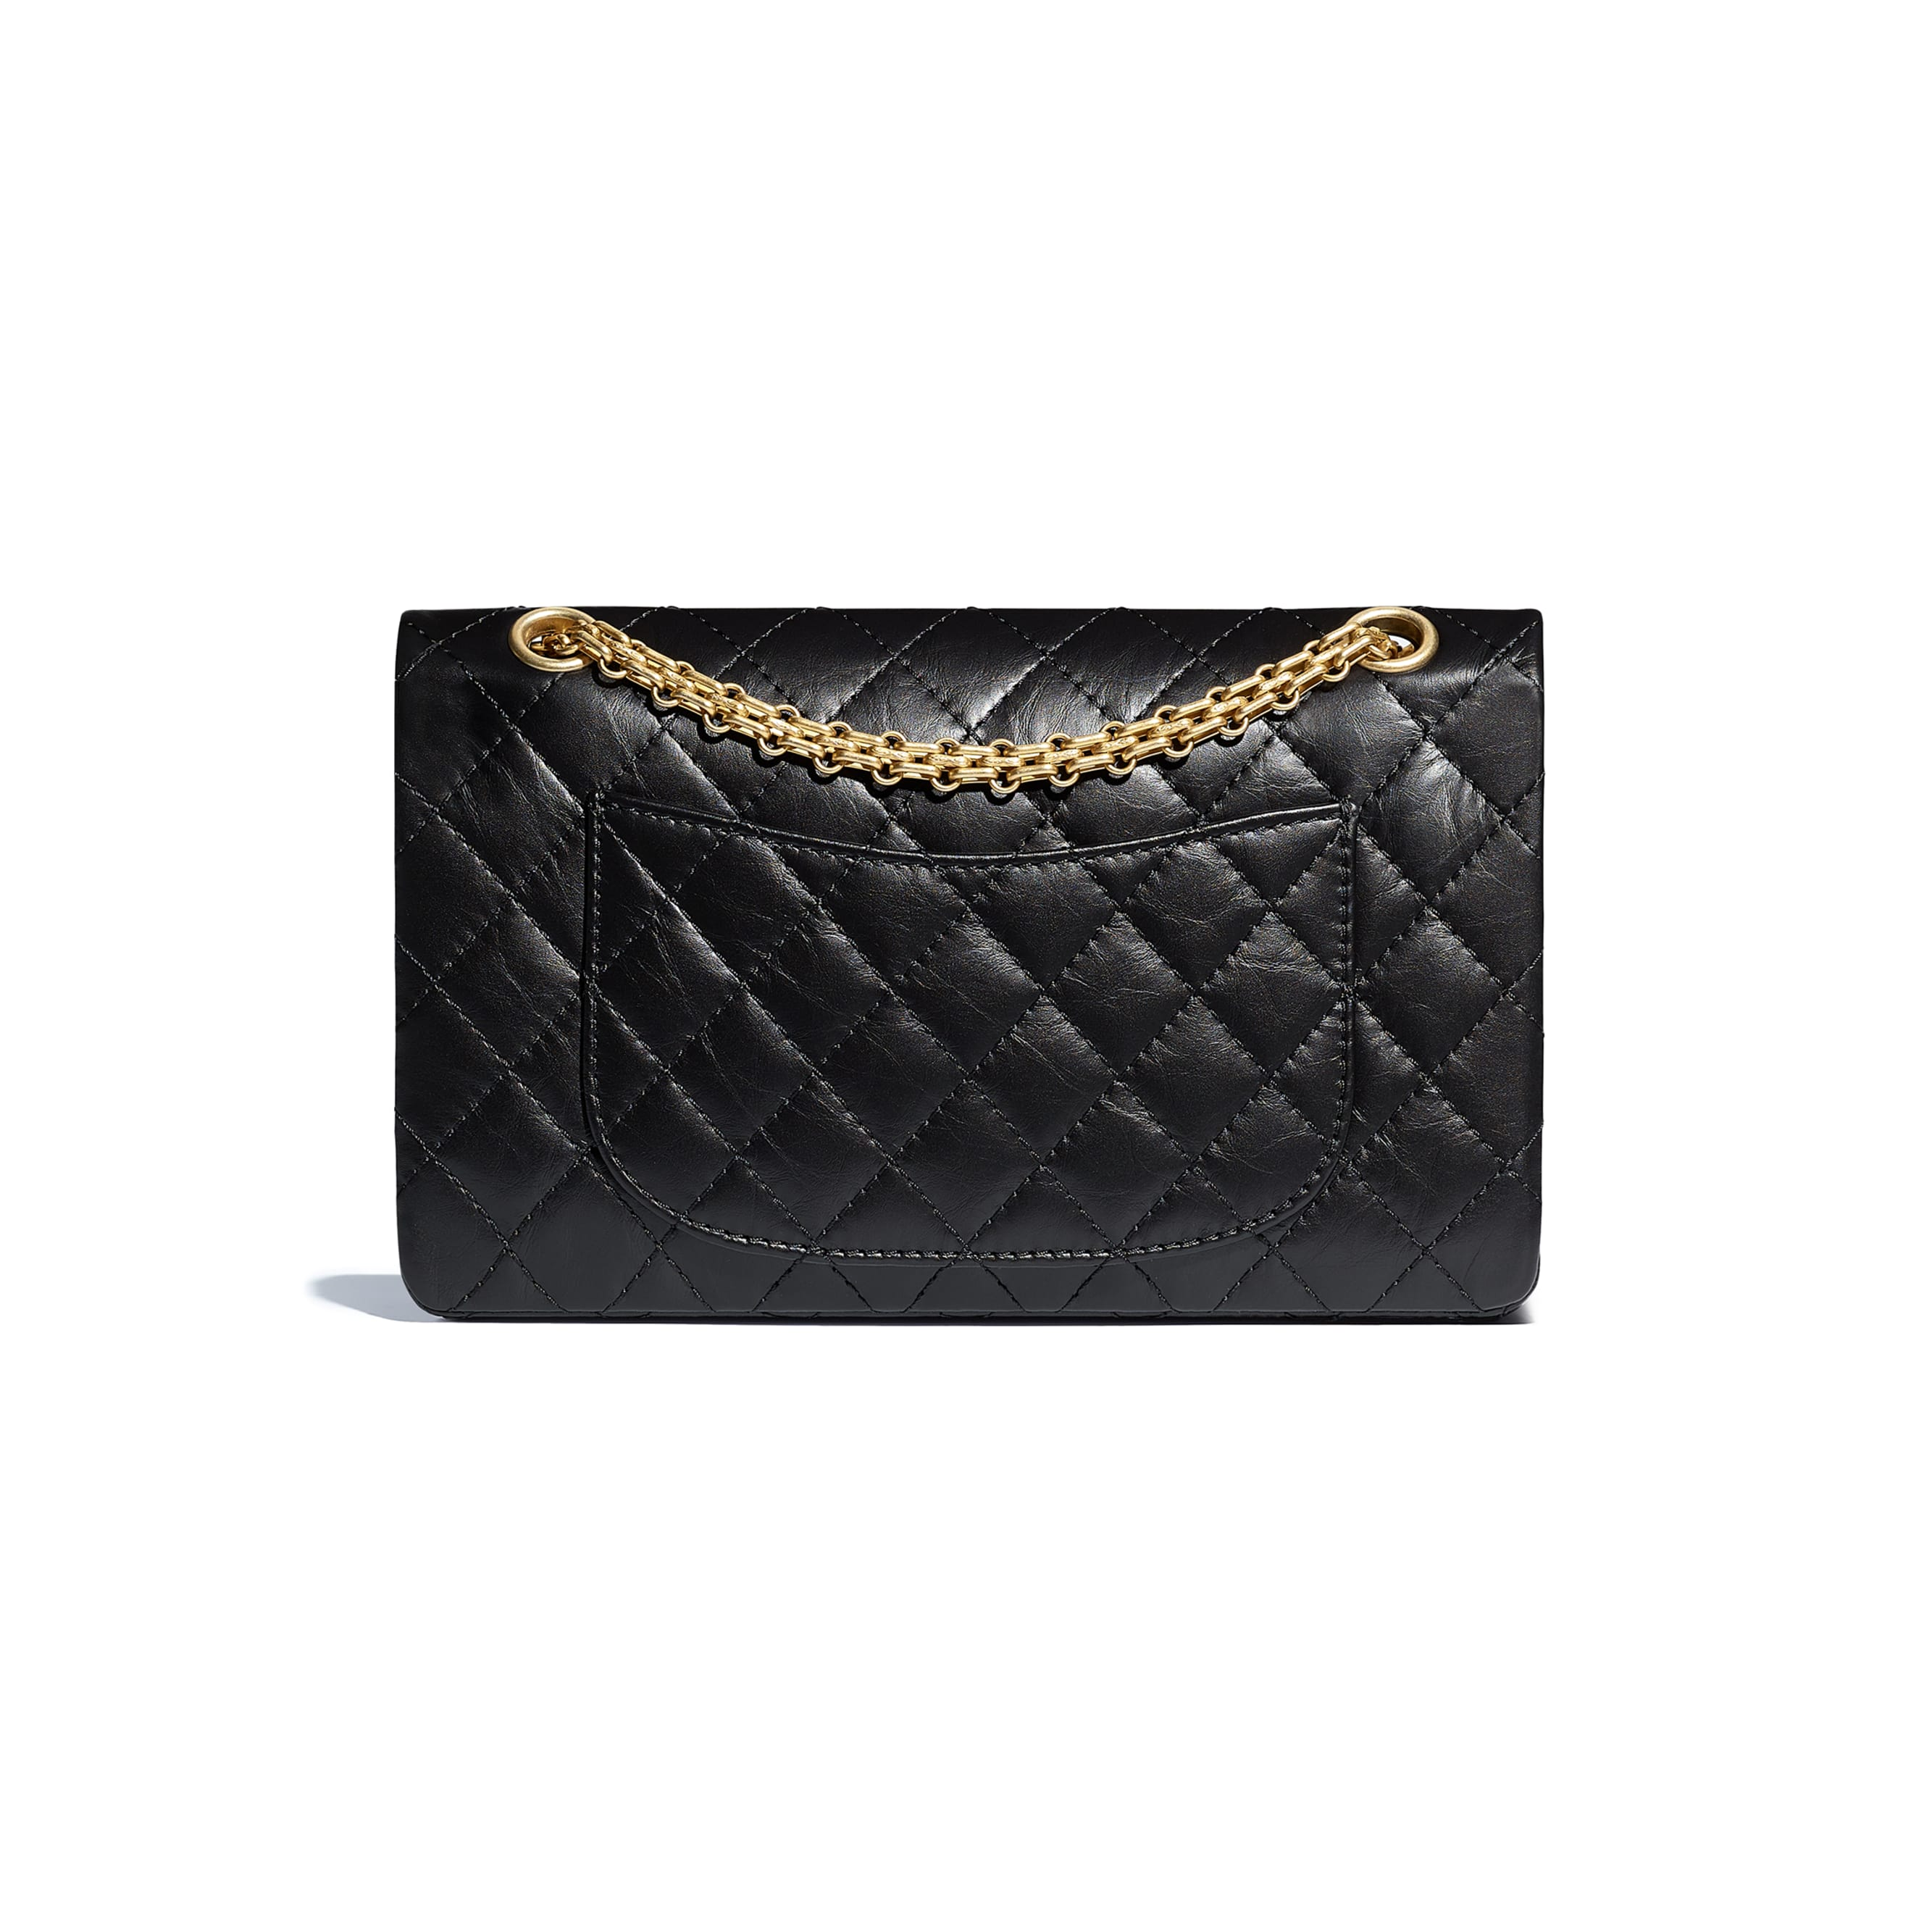 2.55 Handbag - Black - Aged Calfskin & Gold-Tone Metal - Alternative view - see standard sized version